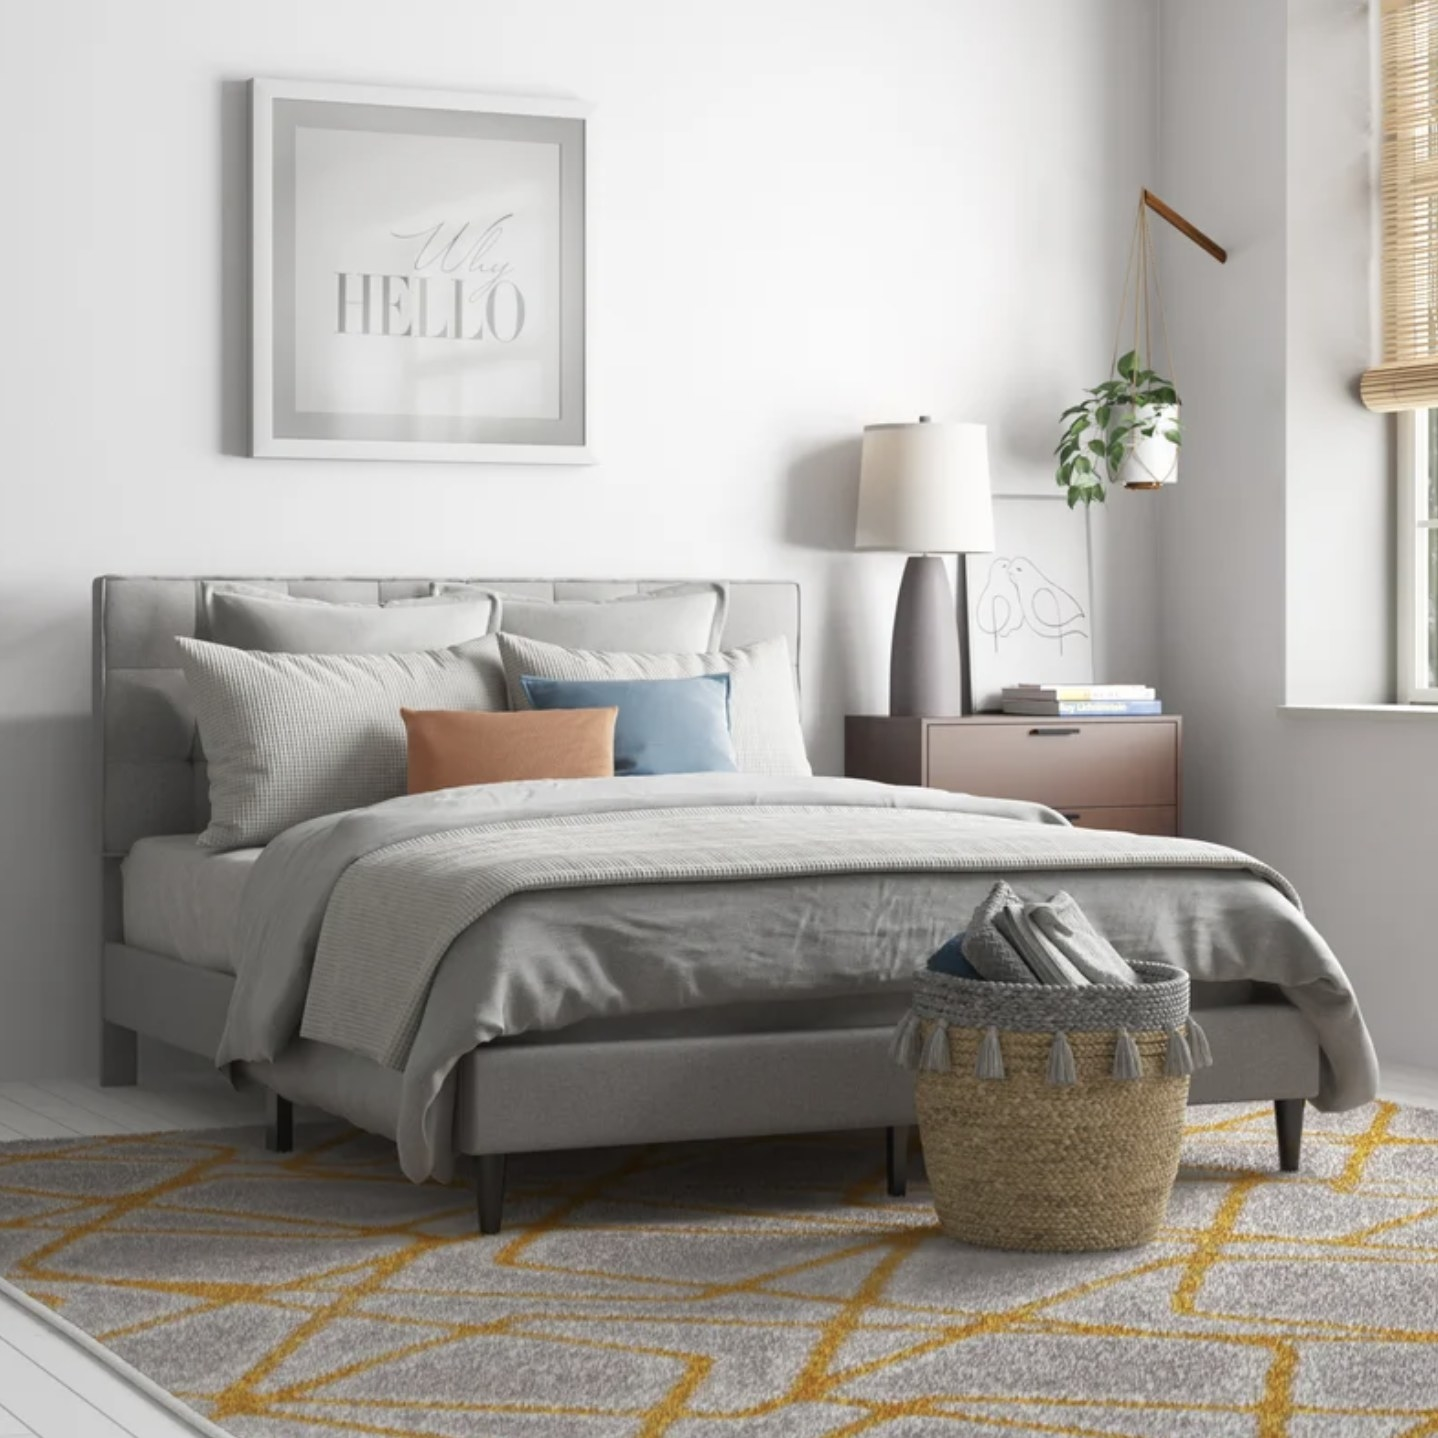 The platform bed in a grey color